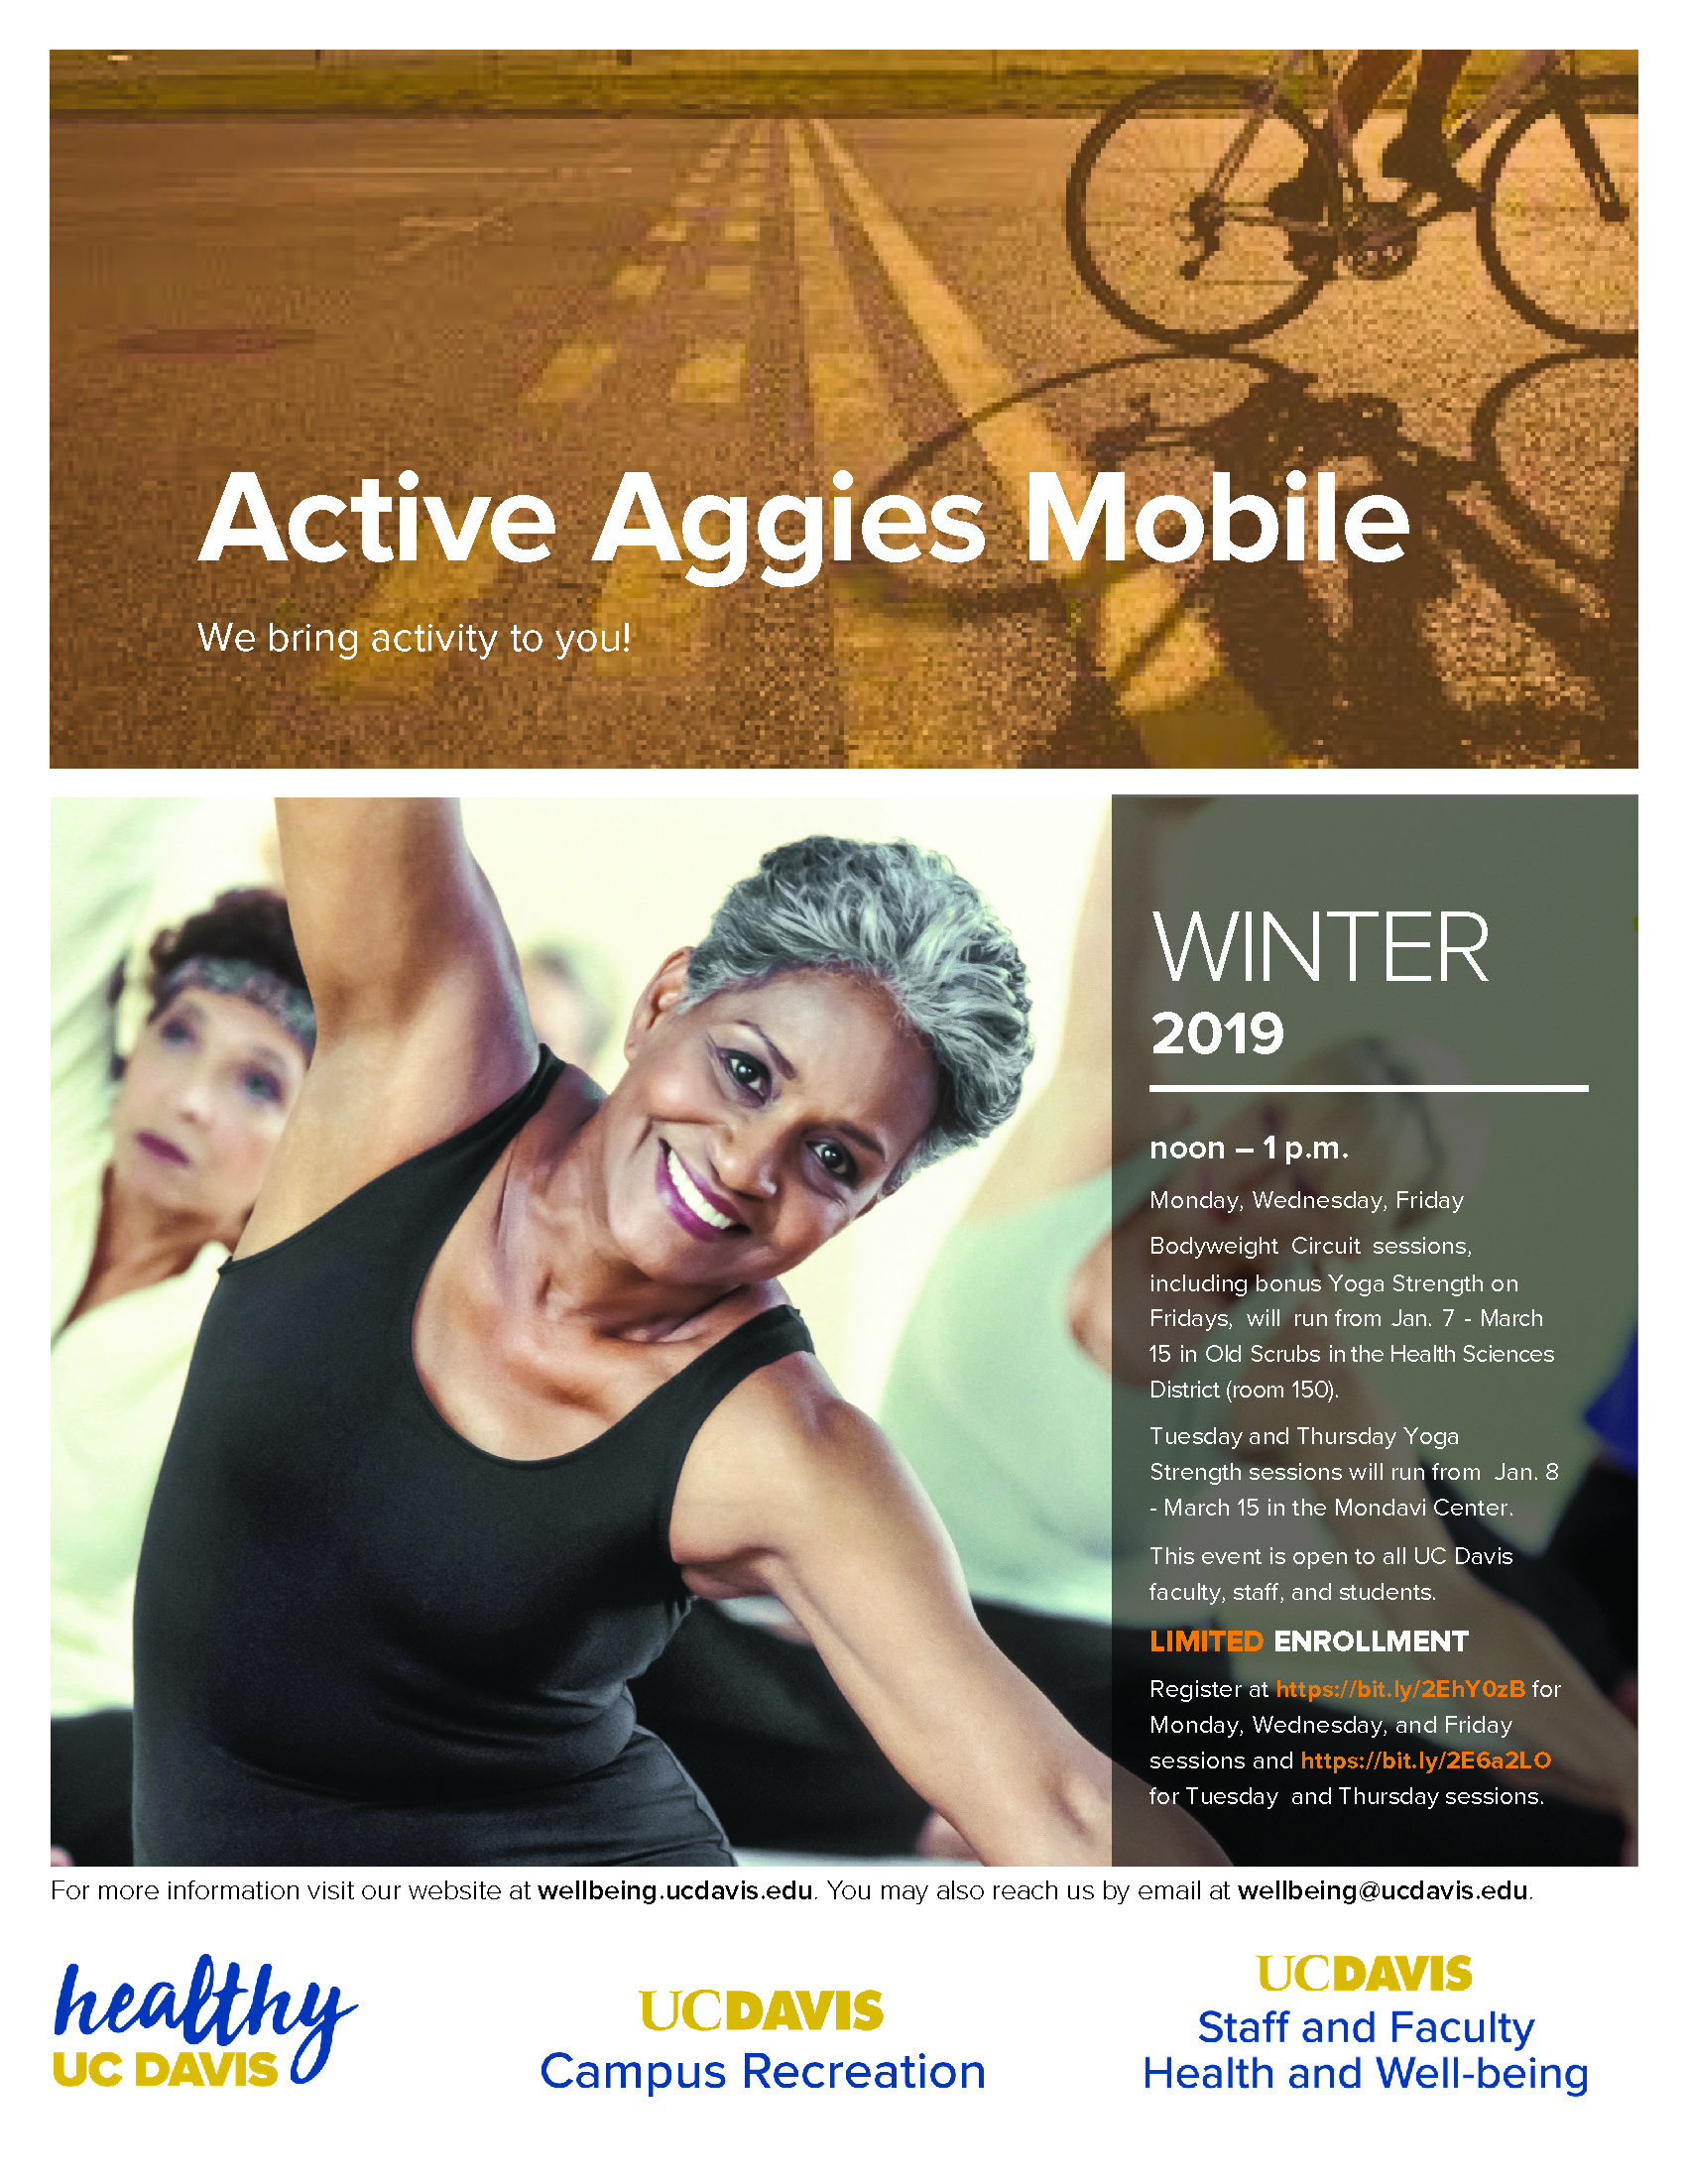 Active Aggies Winter 2019 Flyer